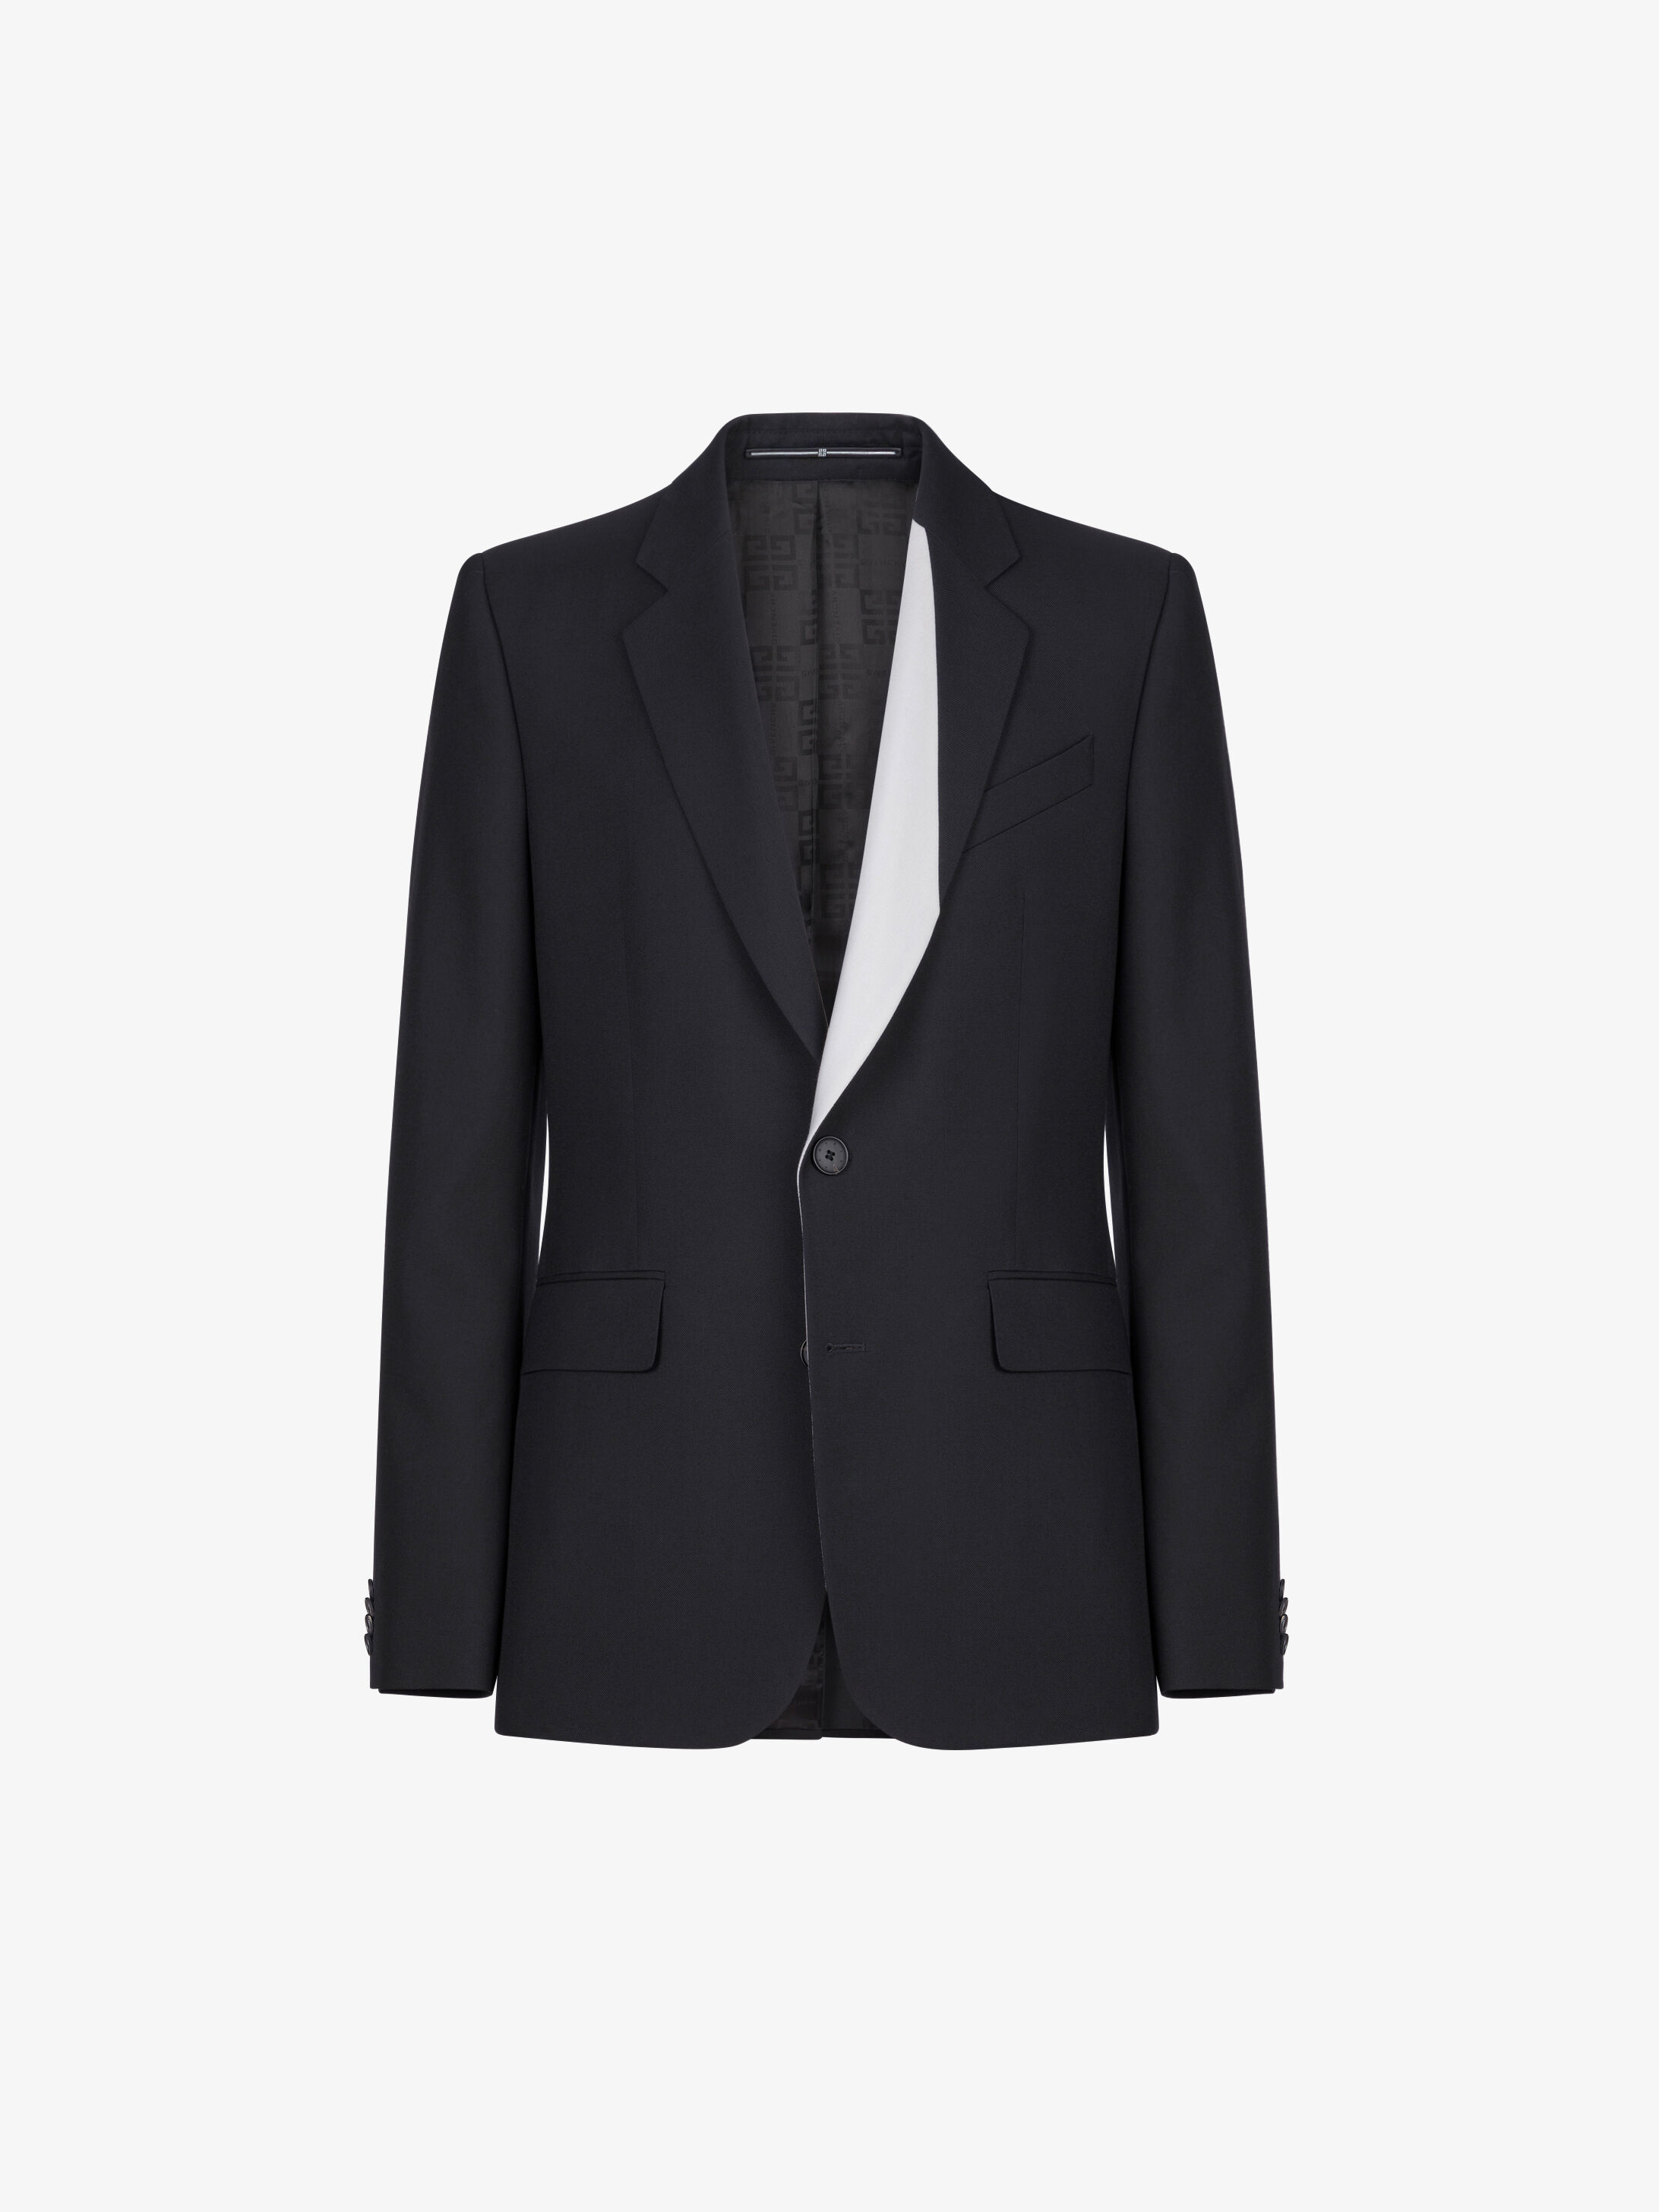 2ee82c15dd Men's Suits and Blazers collection by Givenchy. | GIVENCHY Paris